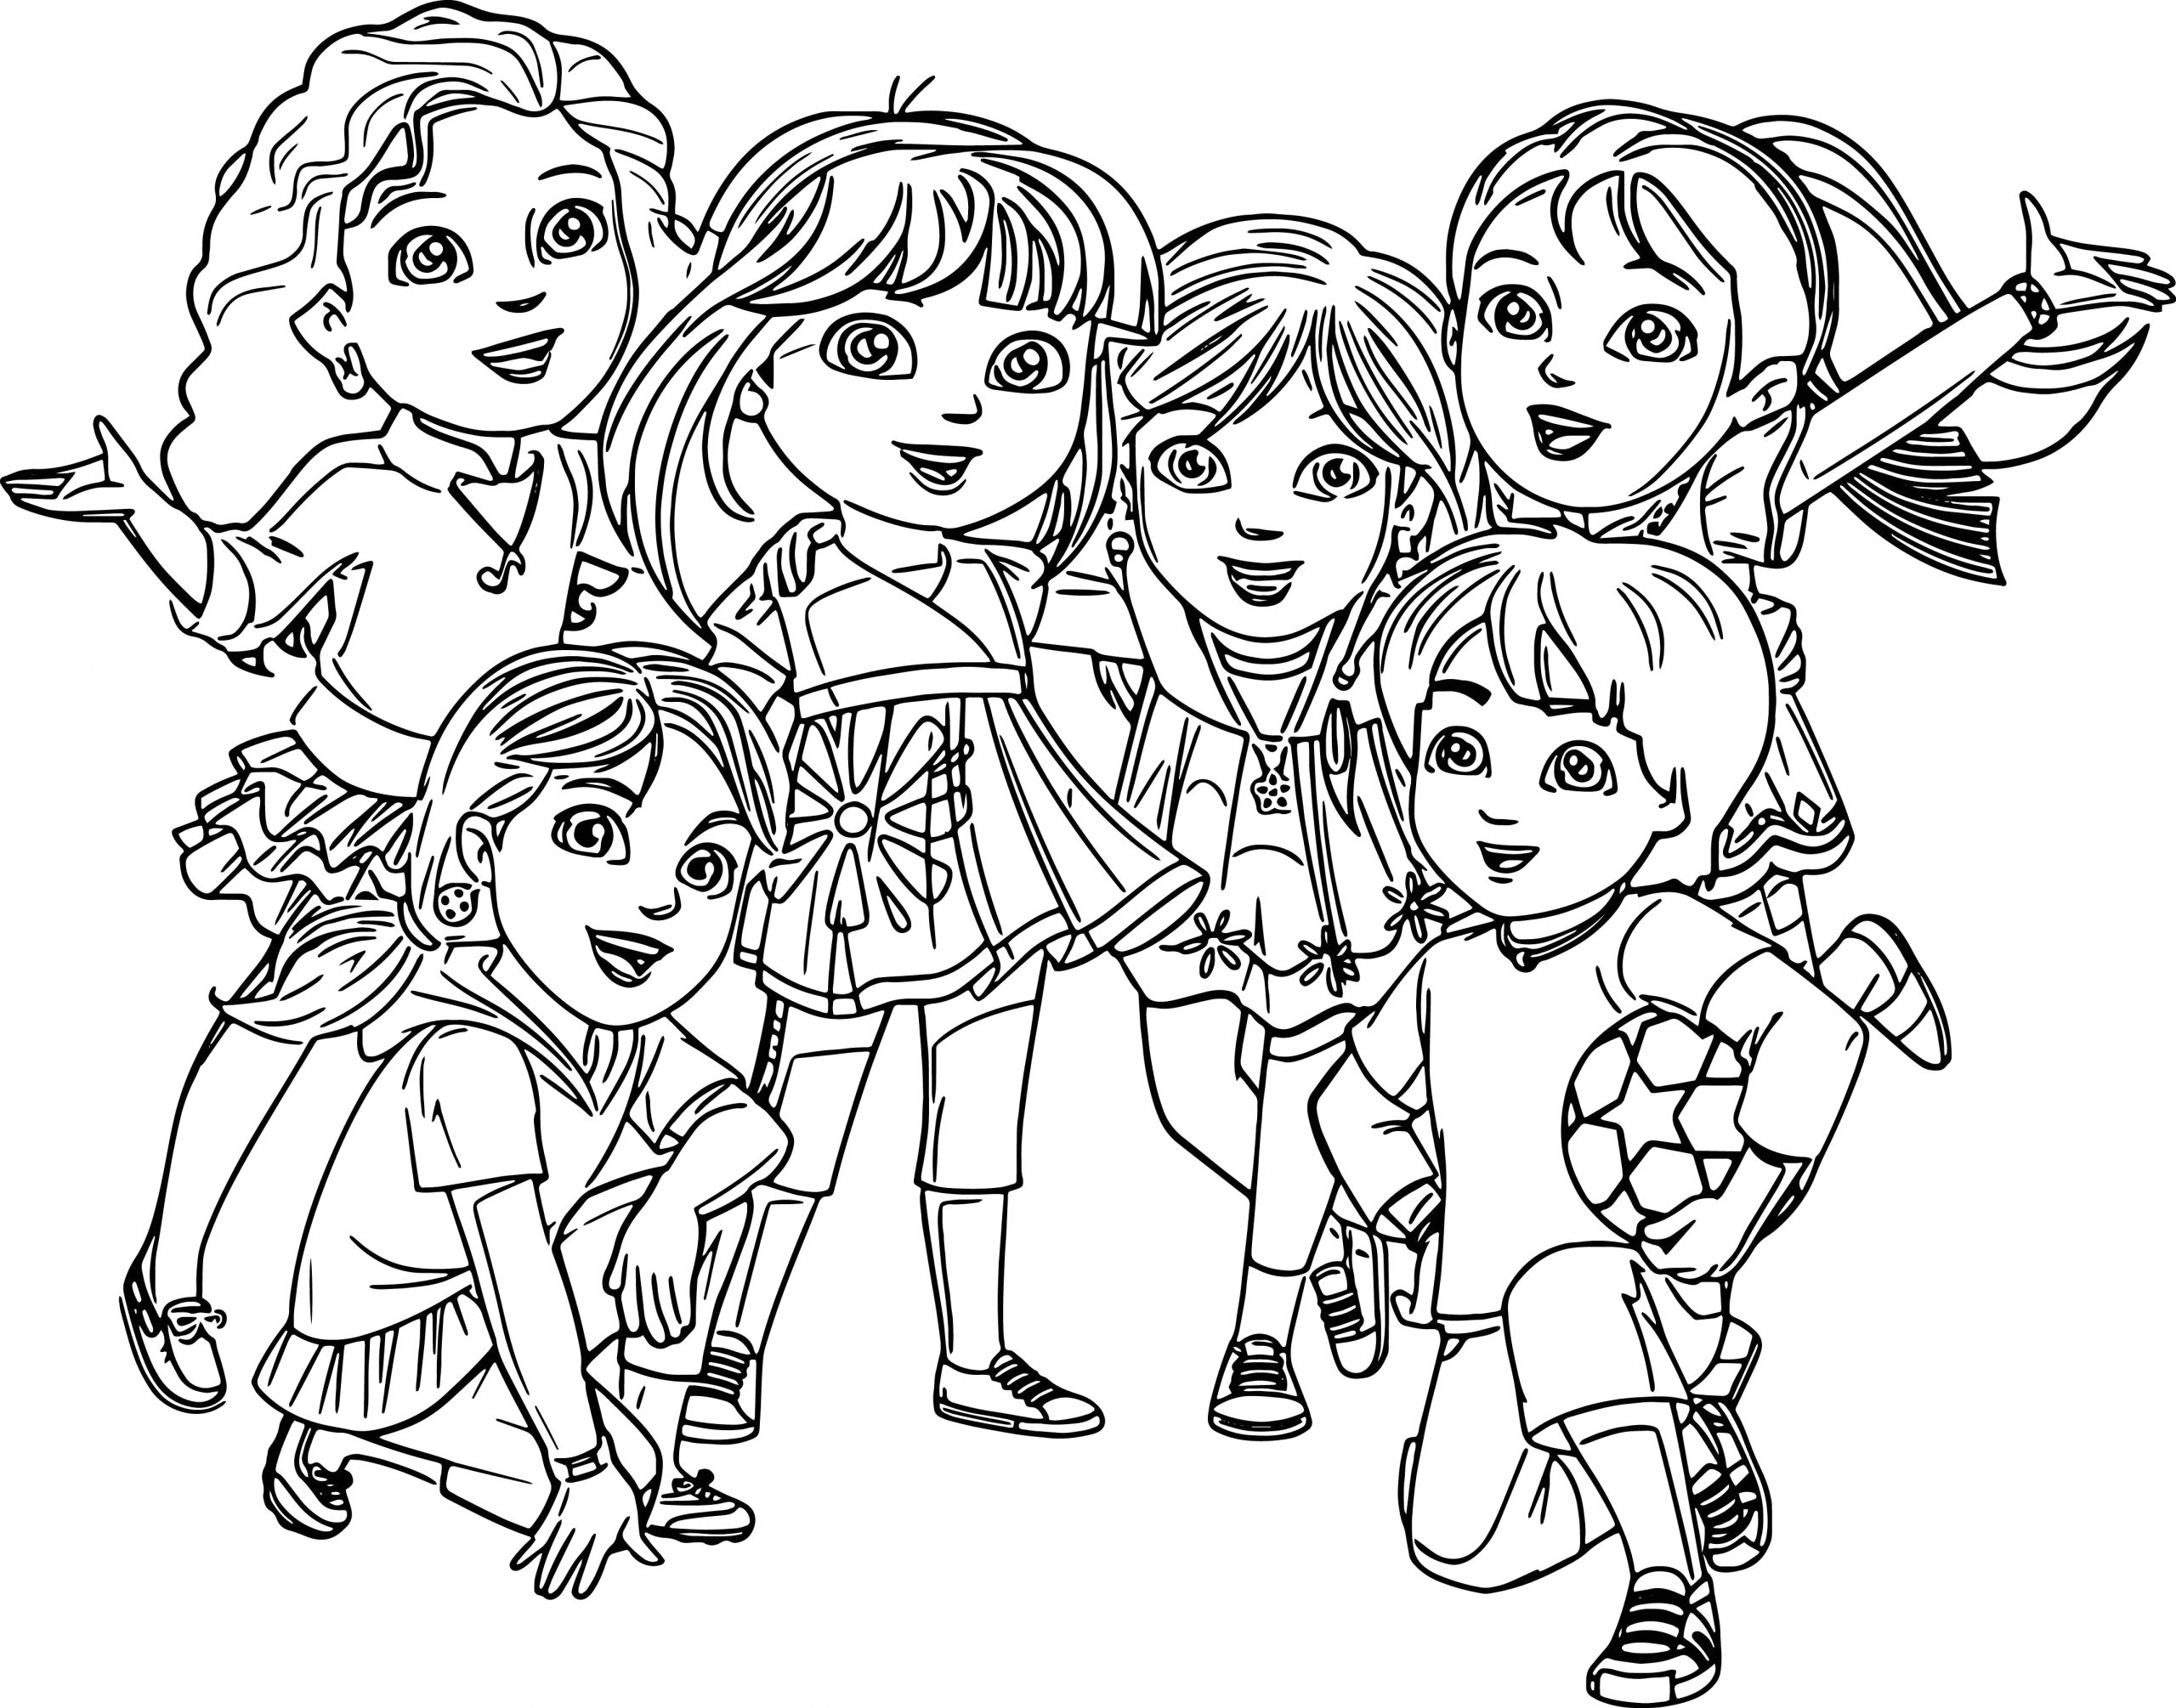 Dora and Friends Into the City Coloring Pages Pg 18 and 19 – Dora and Friends Coloring Page